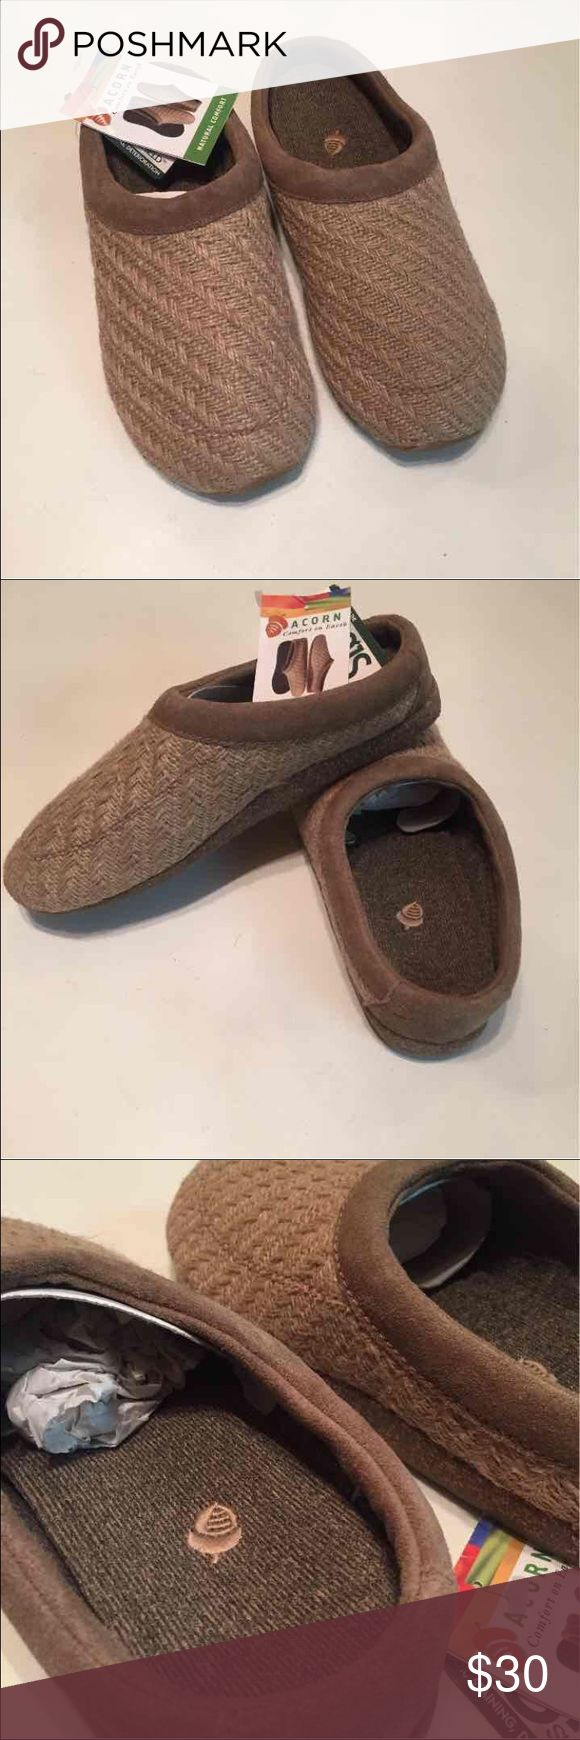 Acorn slip on jute clogs/mules shoes 8 NWT never worn. Acorn comfort on earth jute and cork slip on clogs. Very comfortable shoes Acorn Shoes Mules & Clogs